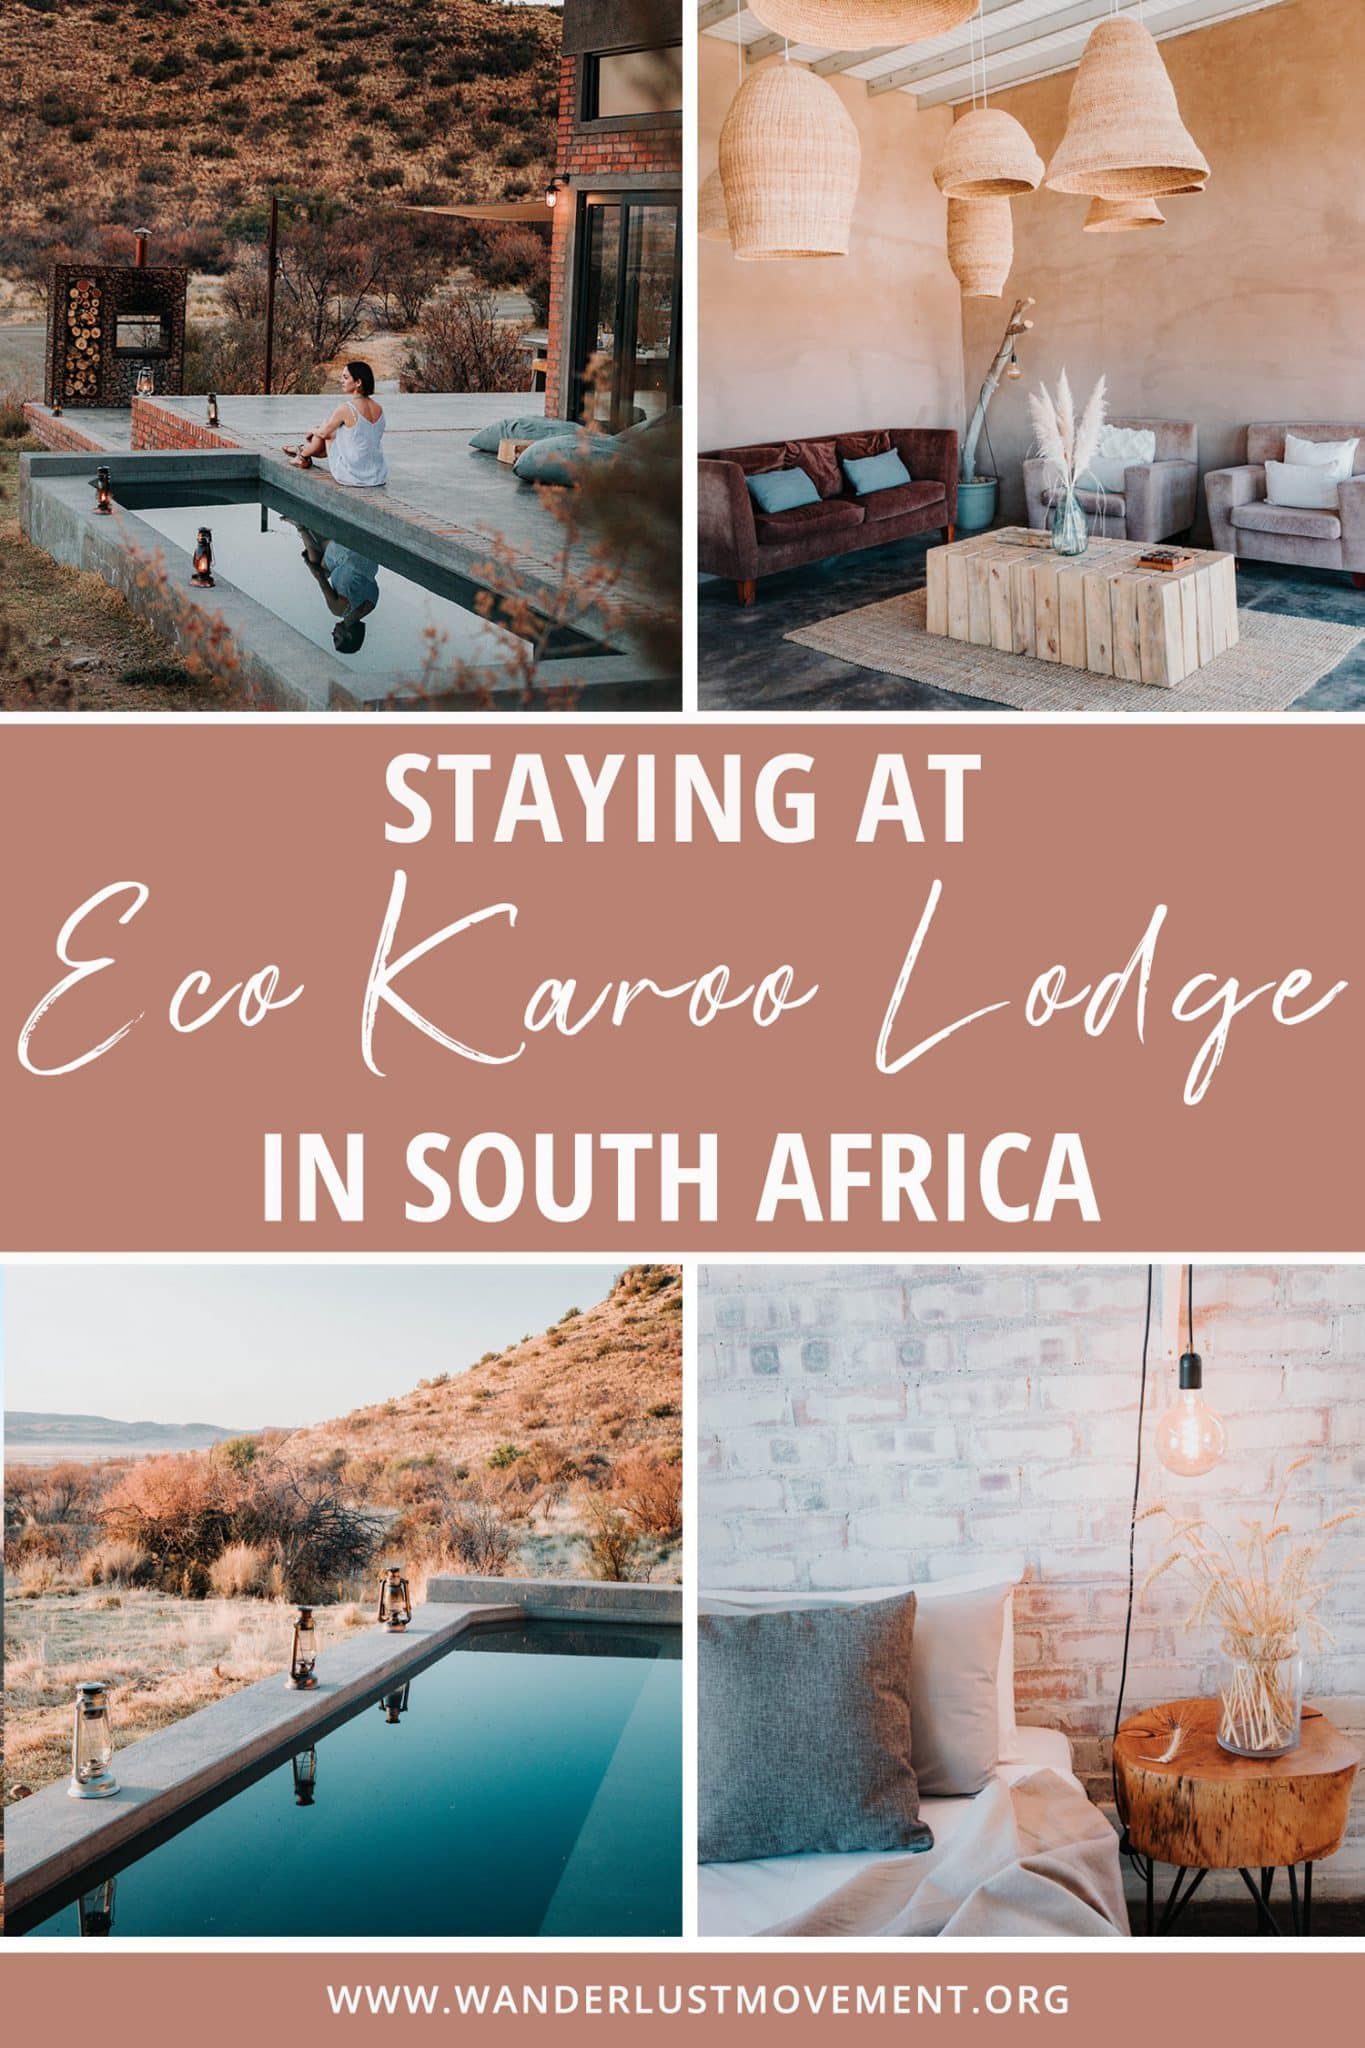 Staying in the Karoo Desert at Eco Karoo Lodge in South Africa